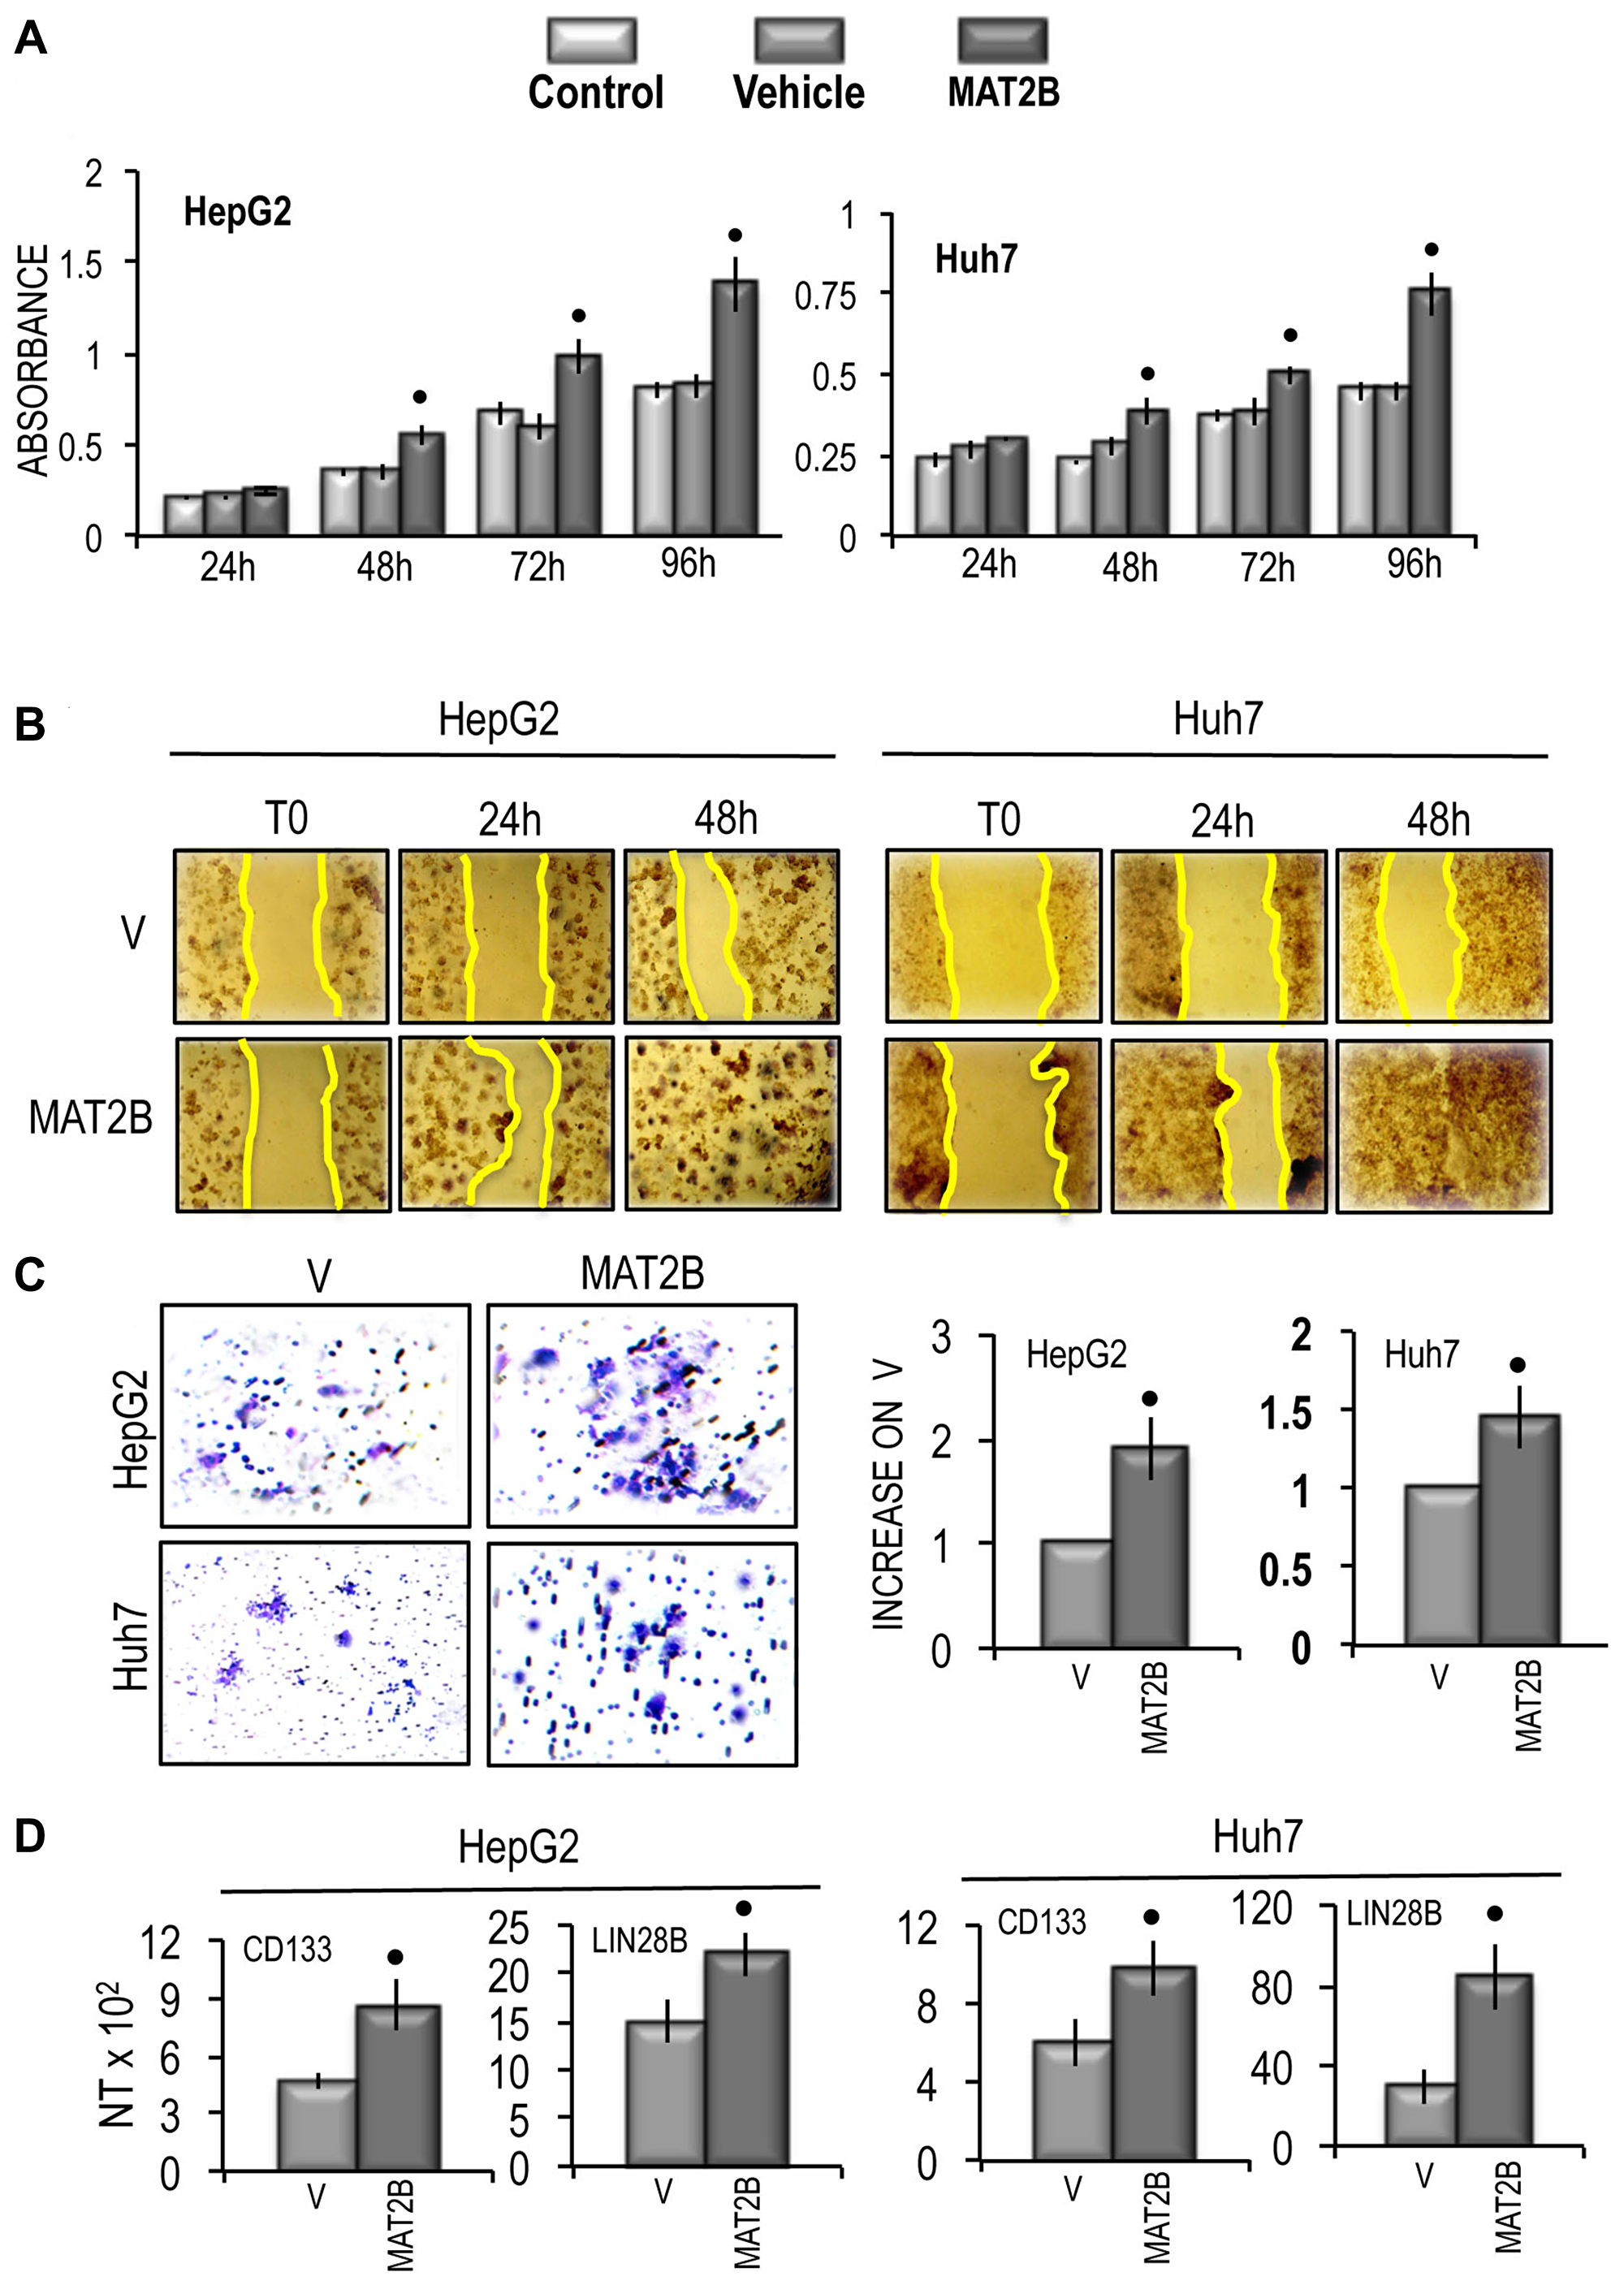 Effect of MAT2B transfection on HepG2 and Huh7 cell viability, cell migration and cell invasivity in vitro and of the expression of CD133 and LIN28B.